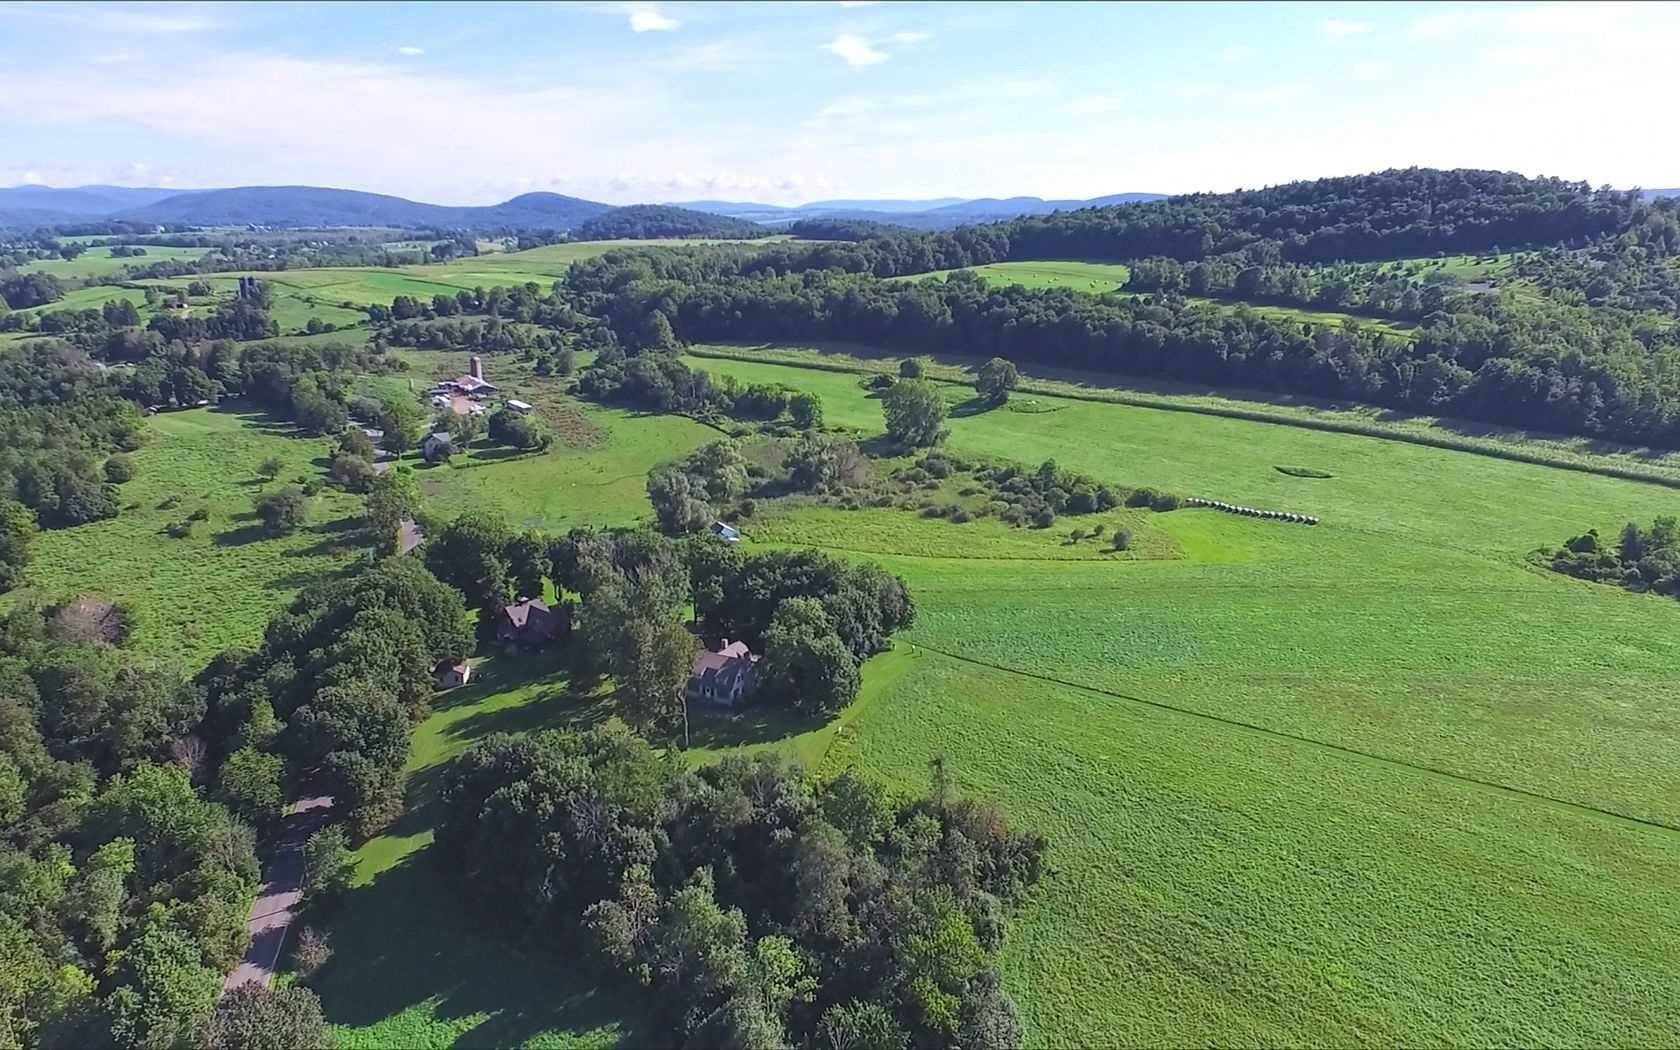 Single Family Home for Sale at 54 SHARON STATION Road 54 SHARON STATION Road Amenia, New York 12501 United States